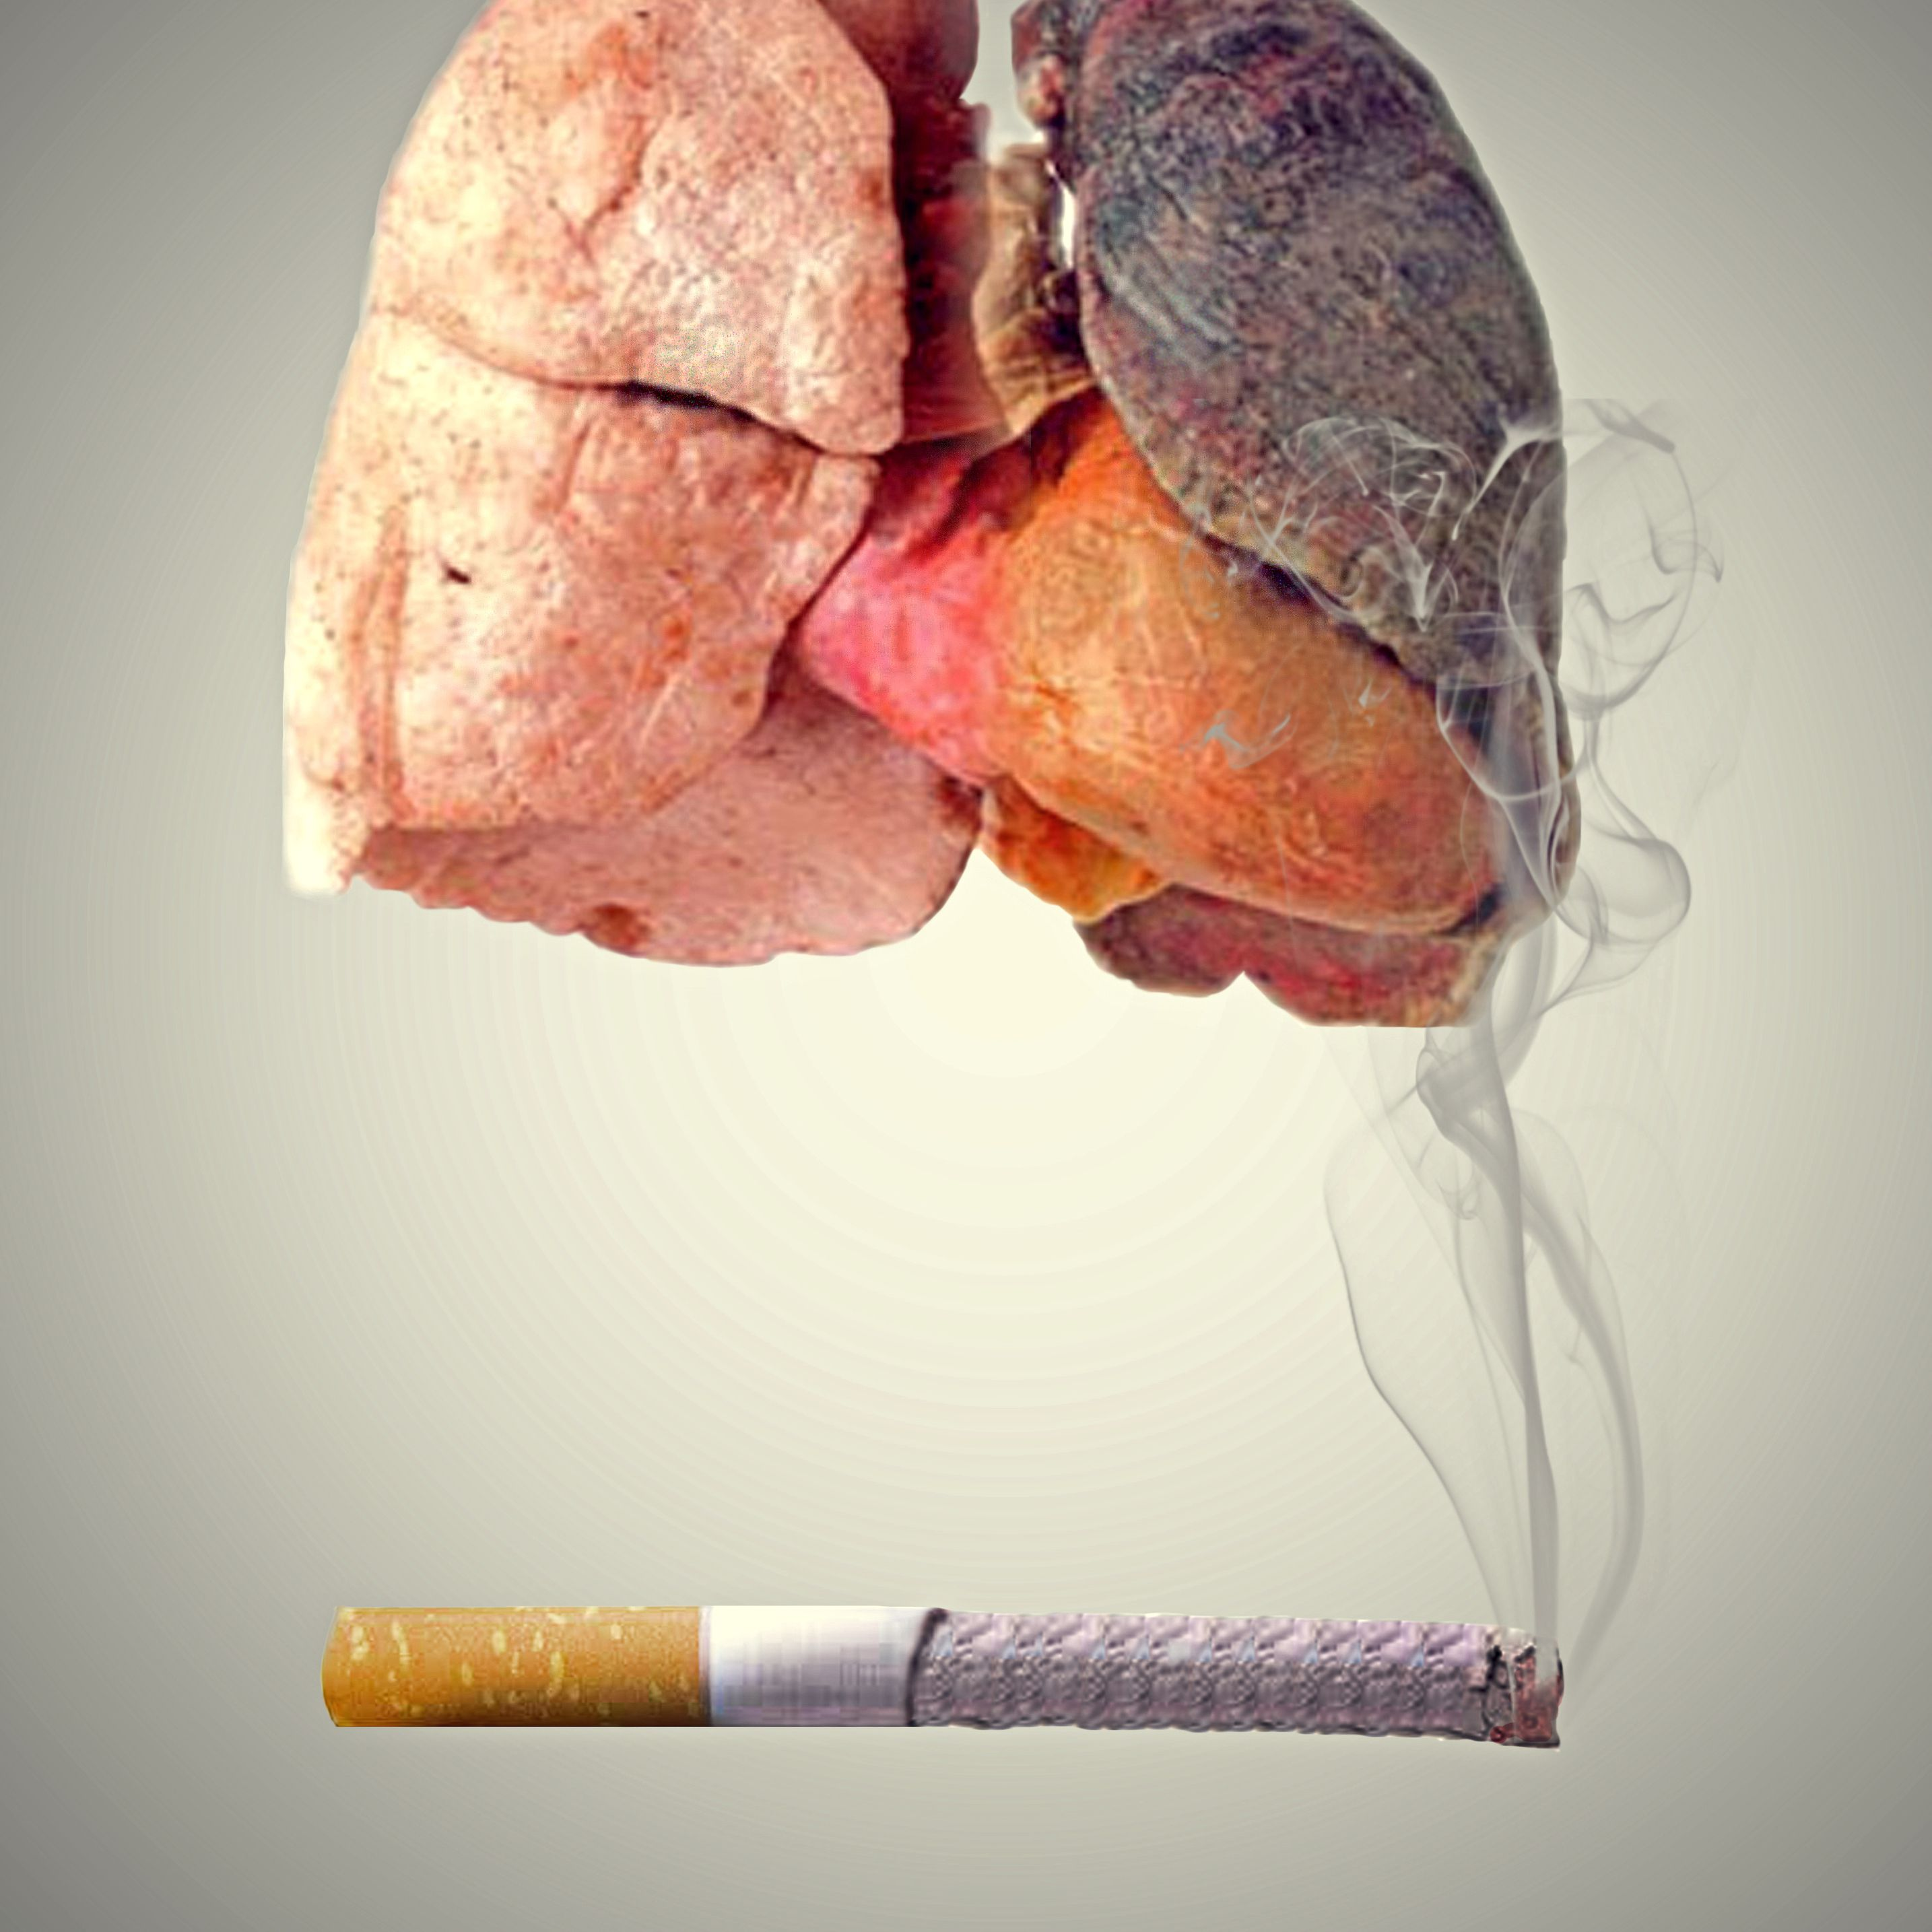 Smoker's Lungs vs  Normal Healthy Lungs